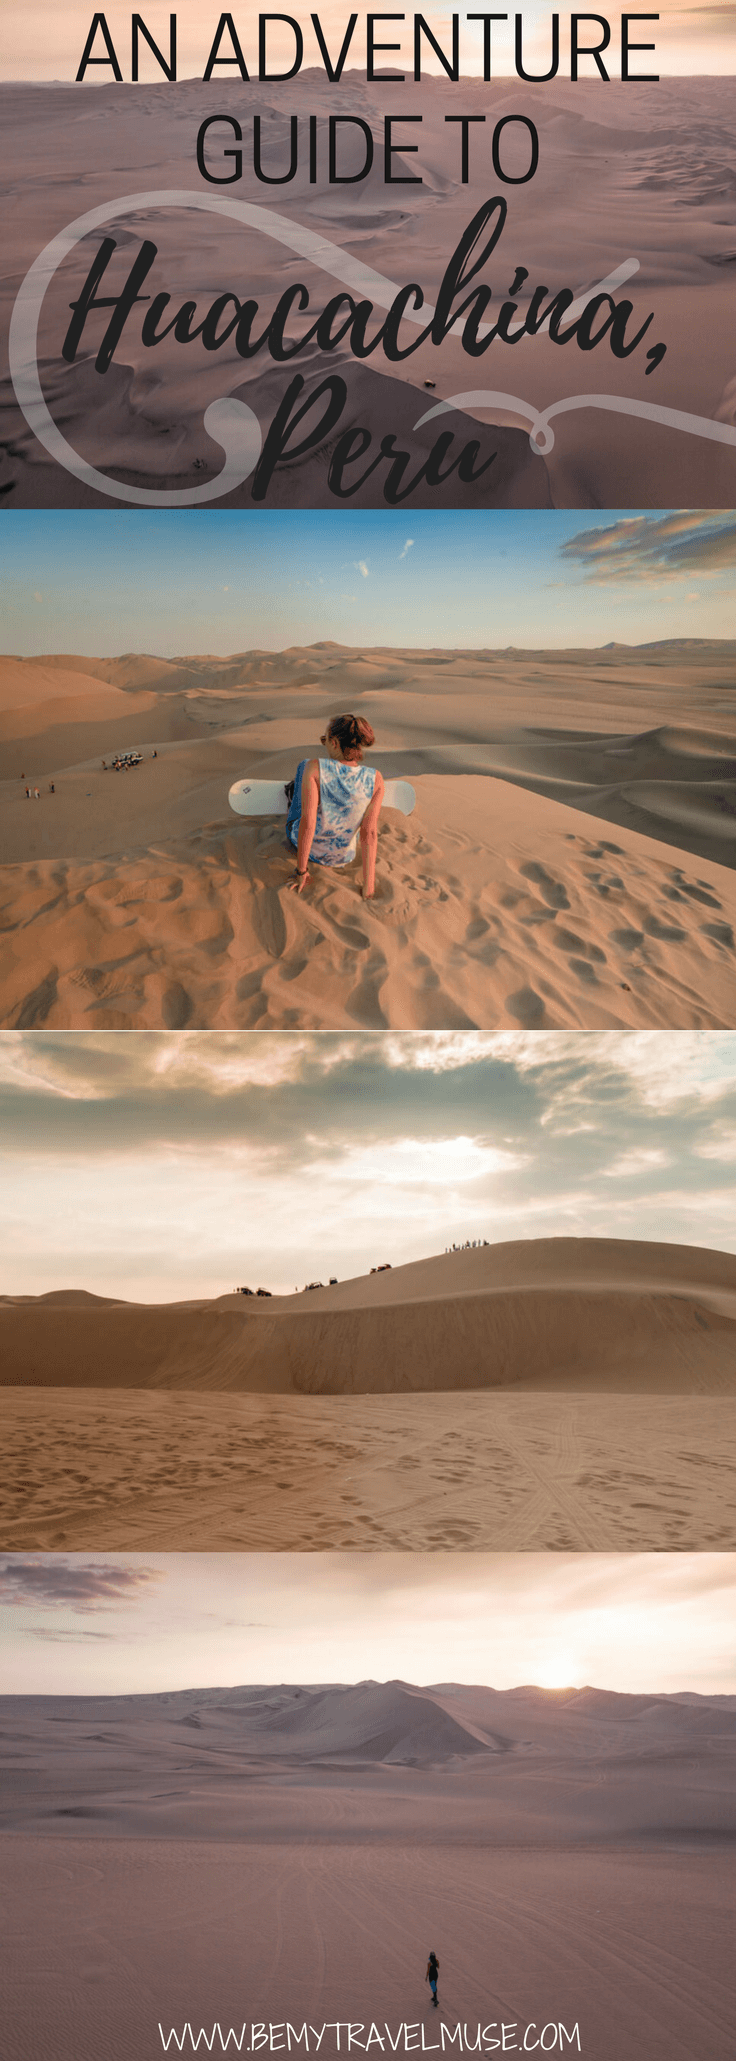 Here's an adventure guide to Huacachina, Peru, South America! Tips on getting there, sunrise vs sunset, Sand boarding, sledding, and dune buggy rides, accommodation guide and so much more | Be My Travel Muse | #Peru #Huacachina #SouthAmerica